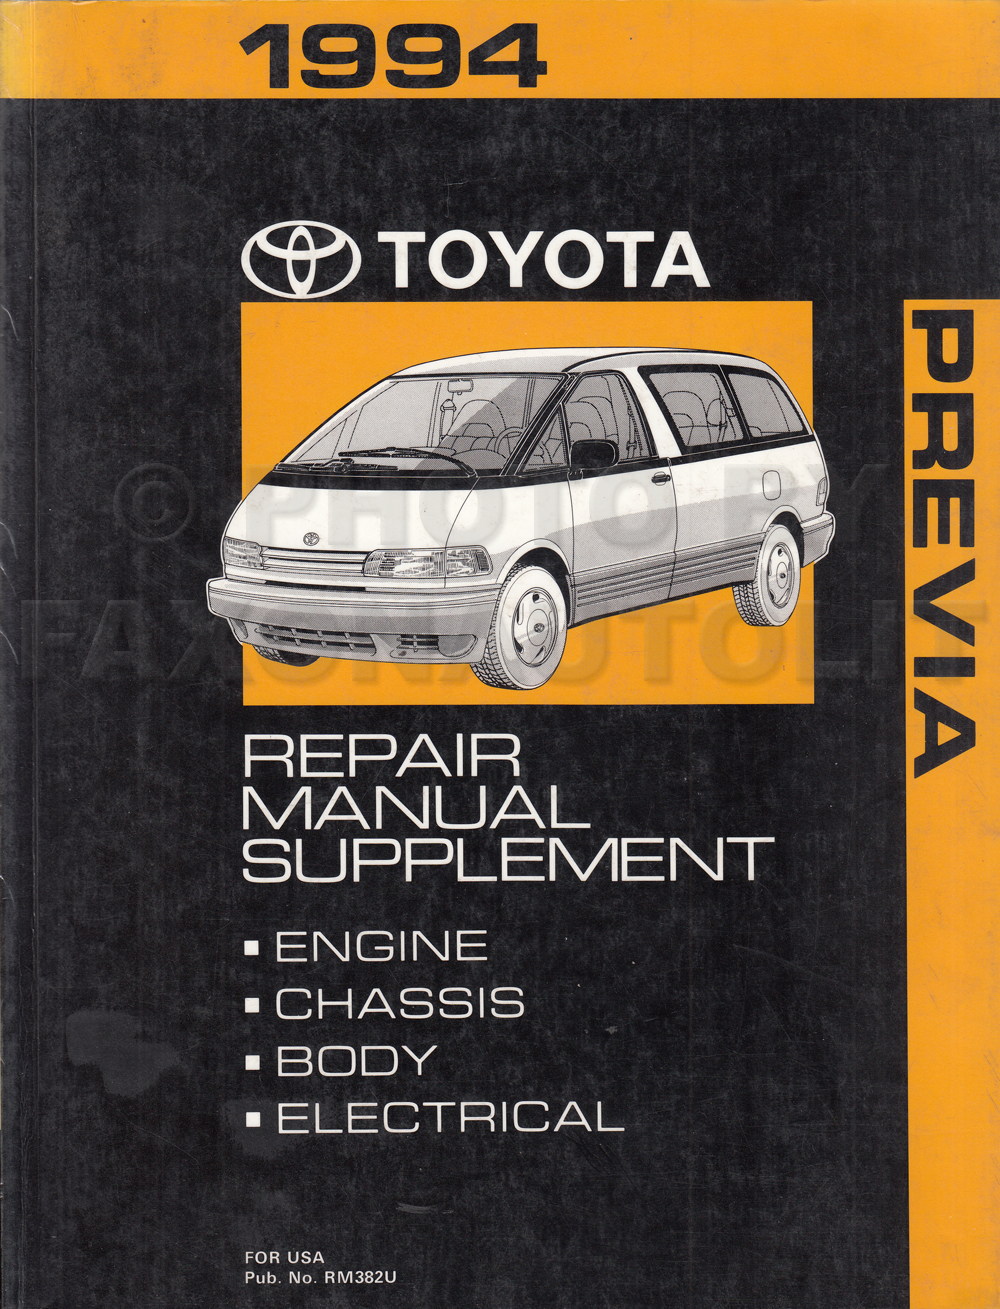 1994 Toyota Previa Van Repair Manual Original